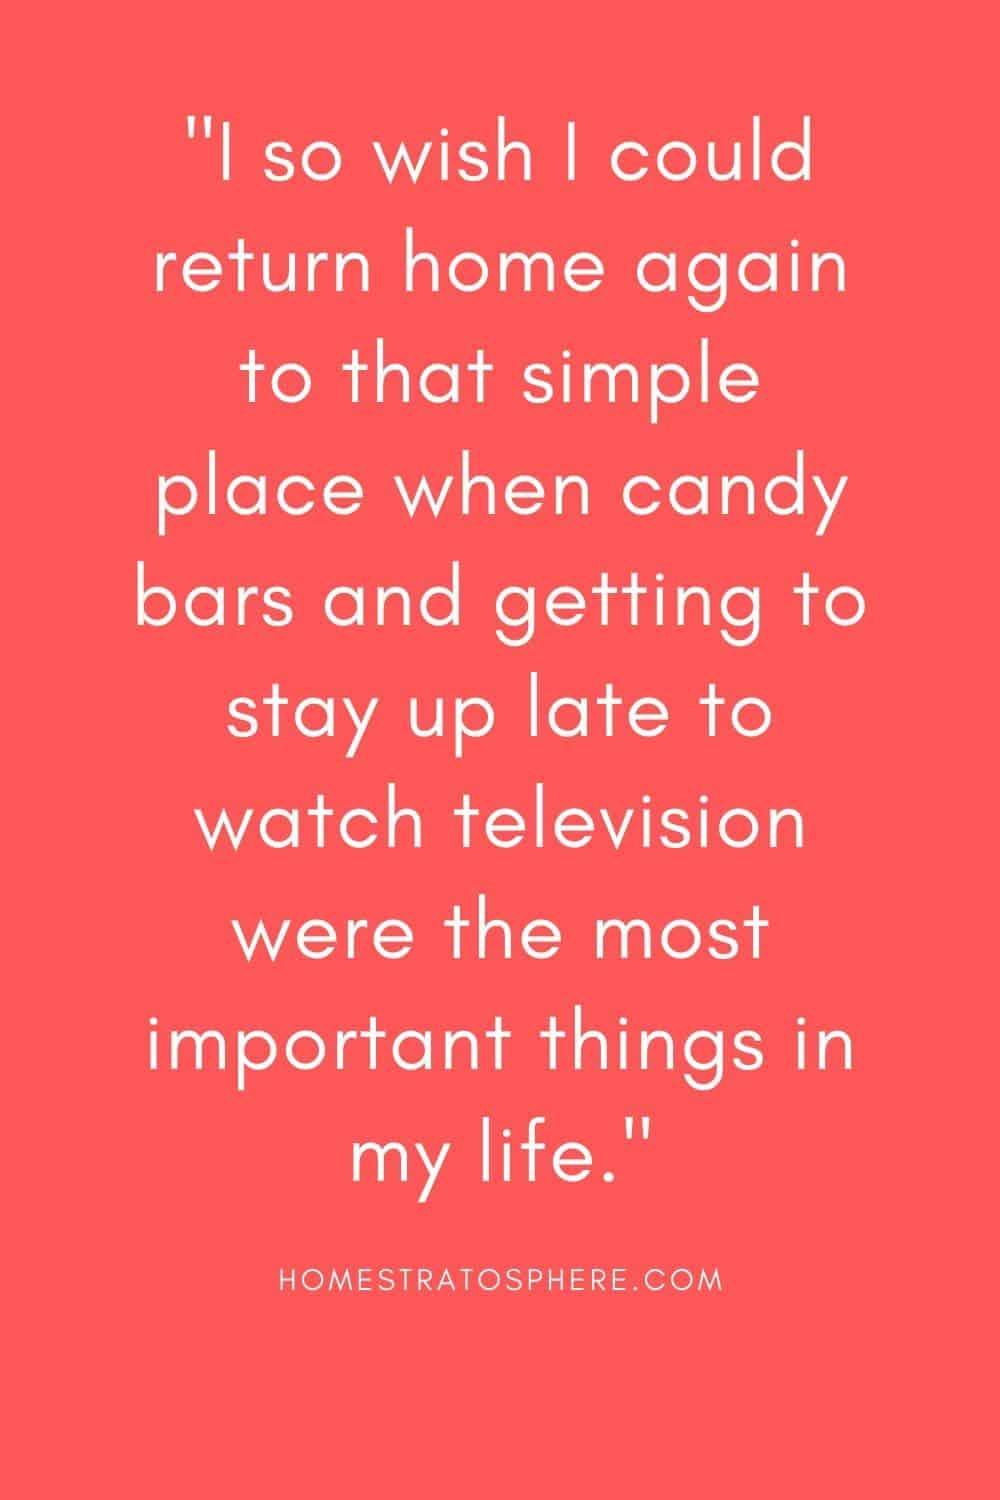 """""""I so wish I could return home again to that simple place when candy bars and getting to stay up late to watch television were the most important things in my life."""""""